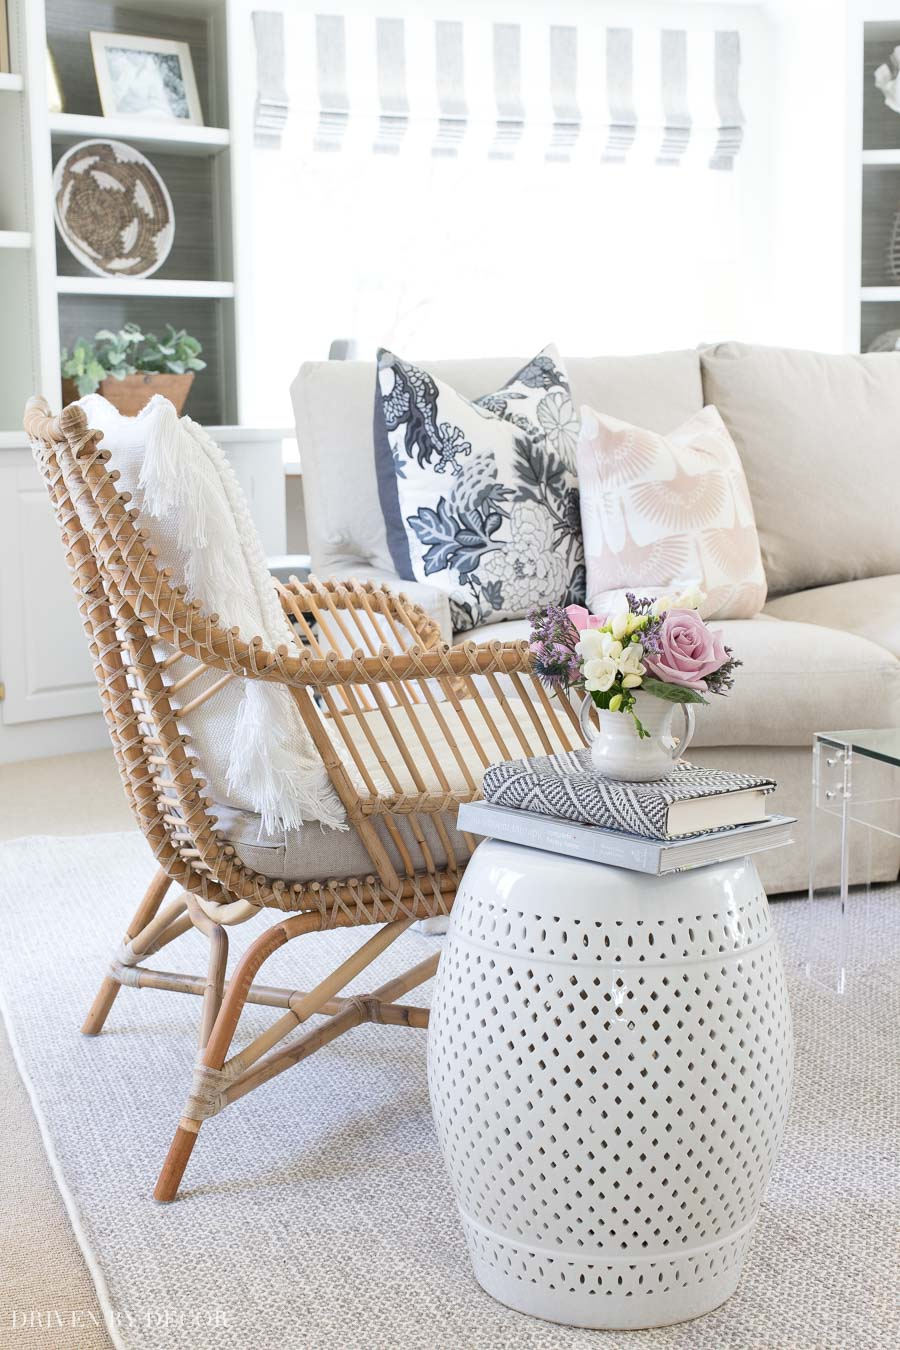 This white ceramic garden stool is one of my all-time best home purchases! Perfect for a side table in my living room and drink table on my patio!